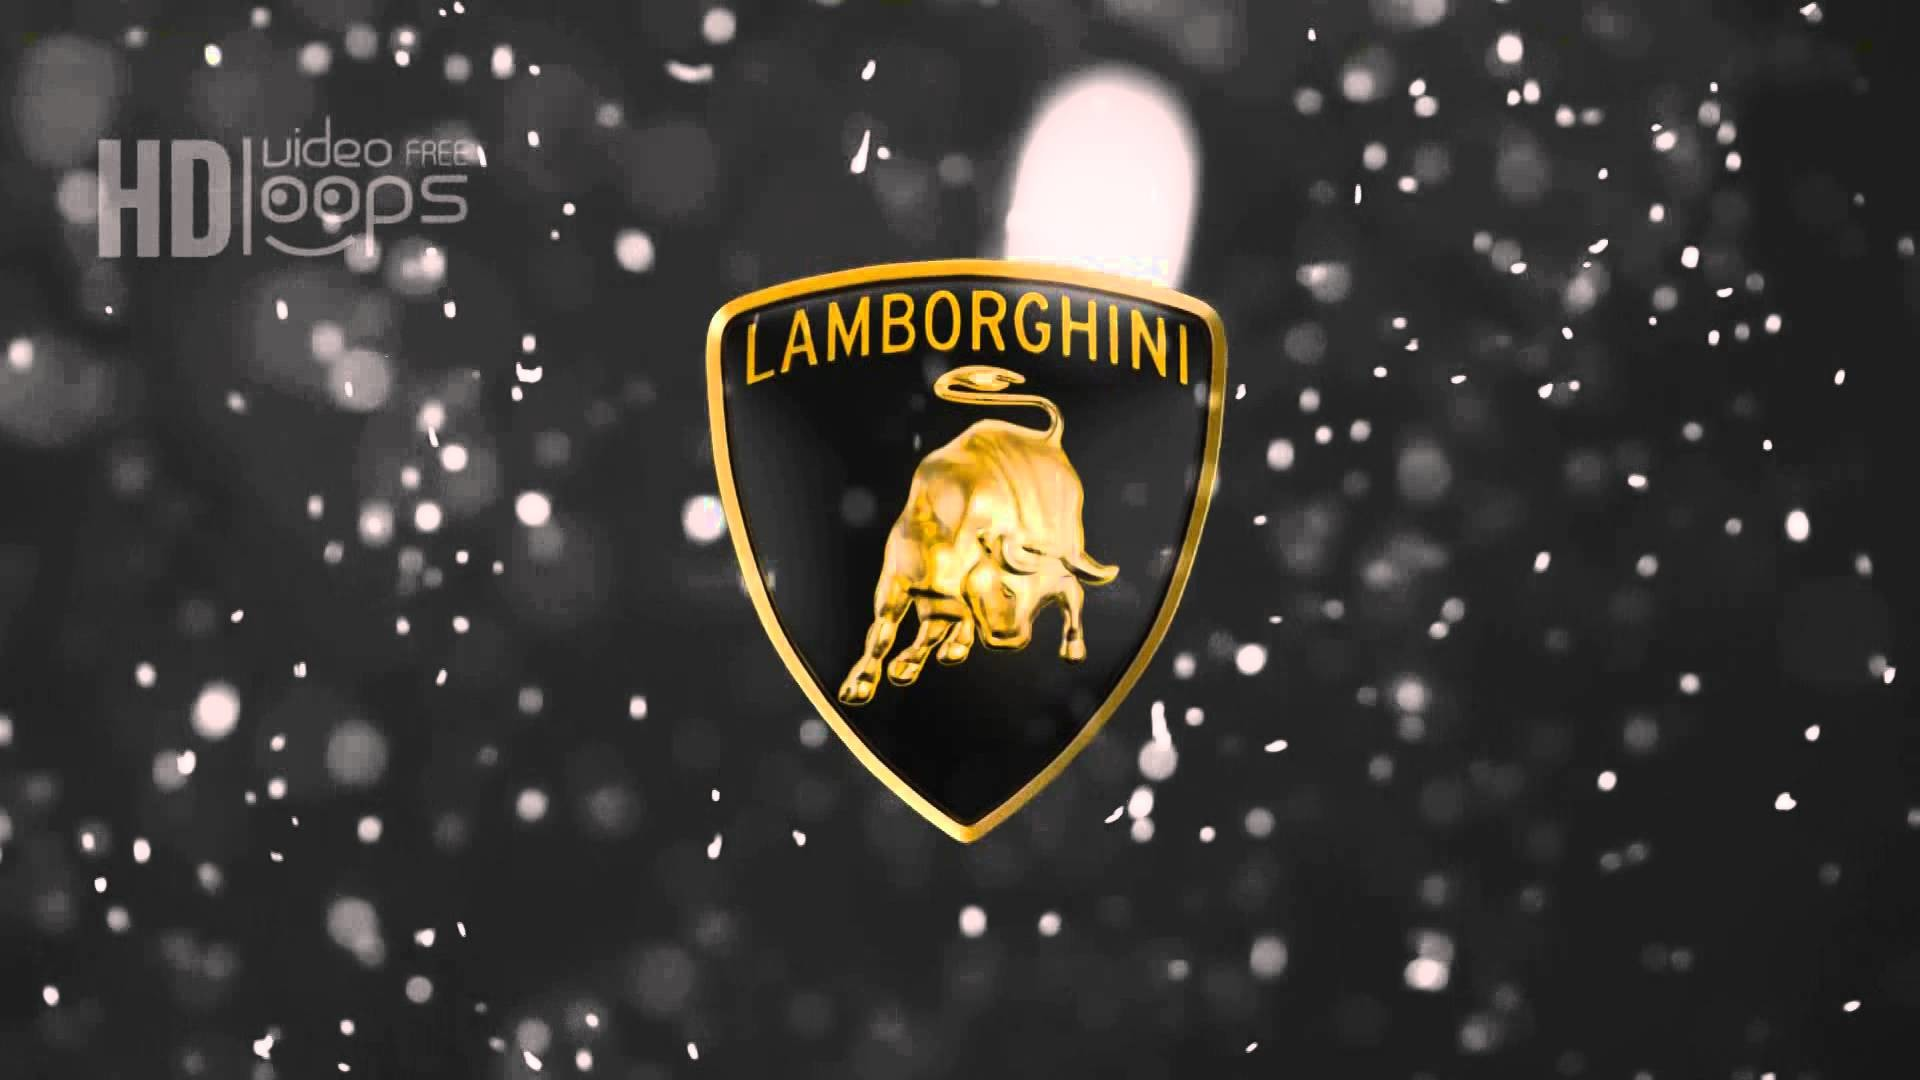 1920x1080 Lamborghini Logo Wallpaper HD Car Wallpapers - HD Wallpapers